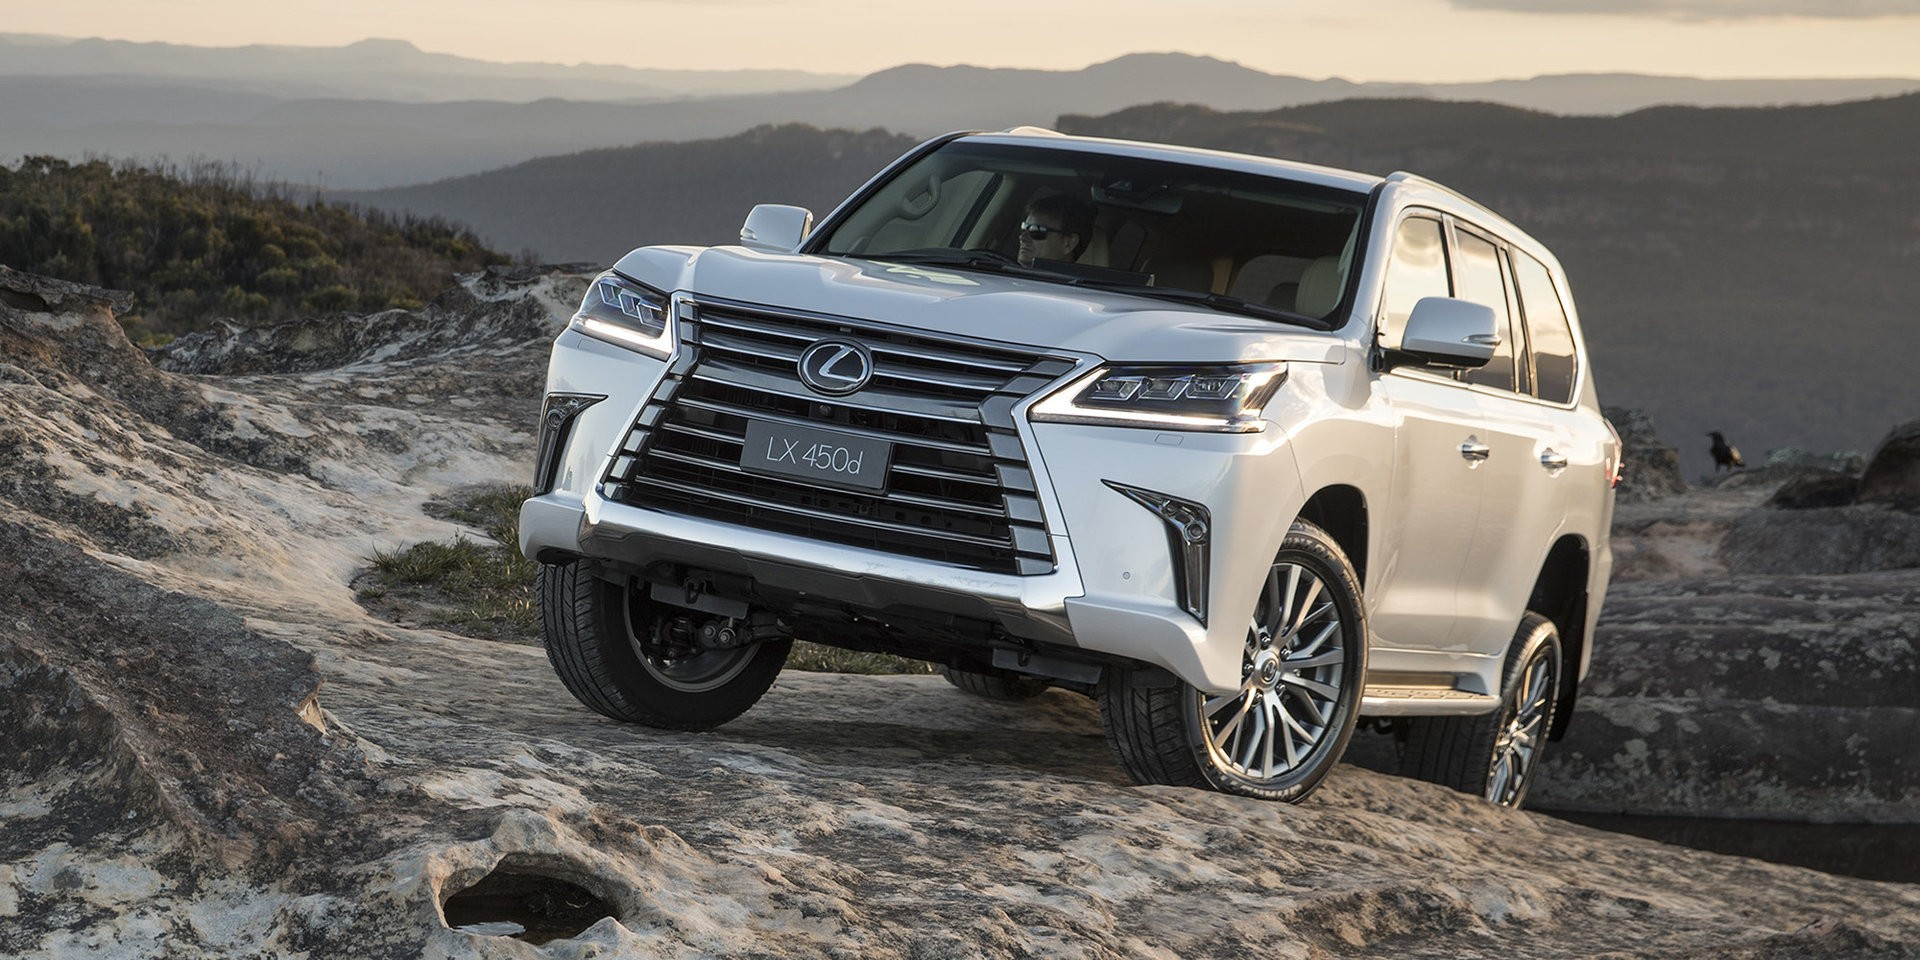 lexus lx 450d large diesel suv launched in australia autoevolution. Black Bedroom Furniture Sets. Home Design Ideas